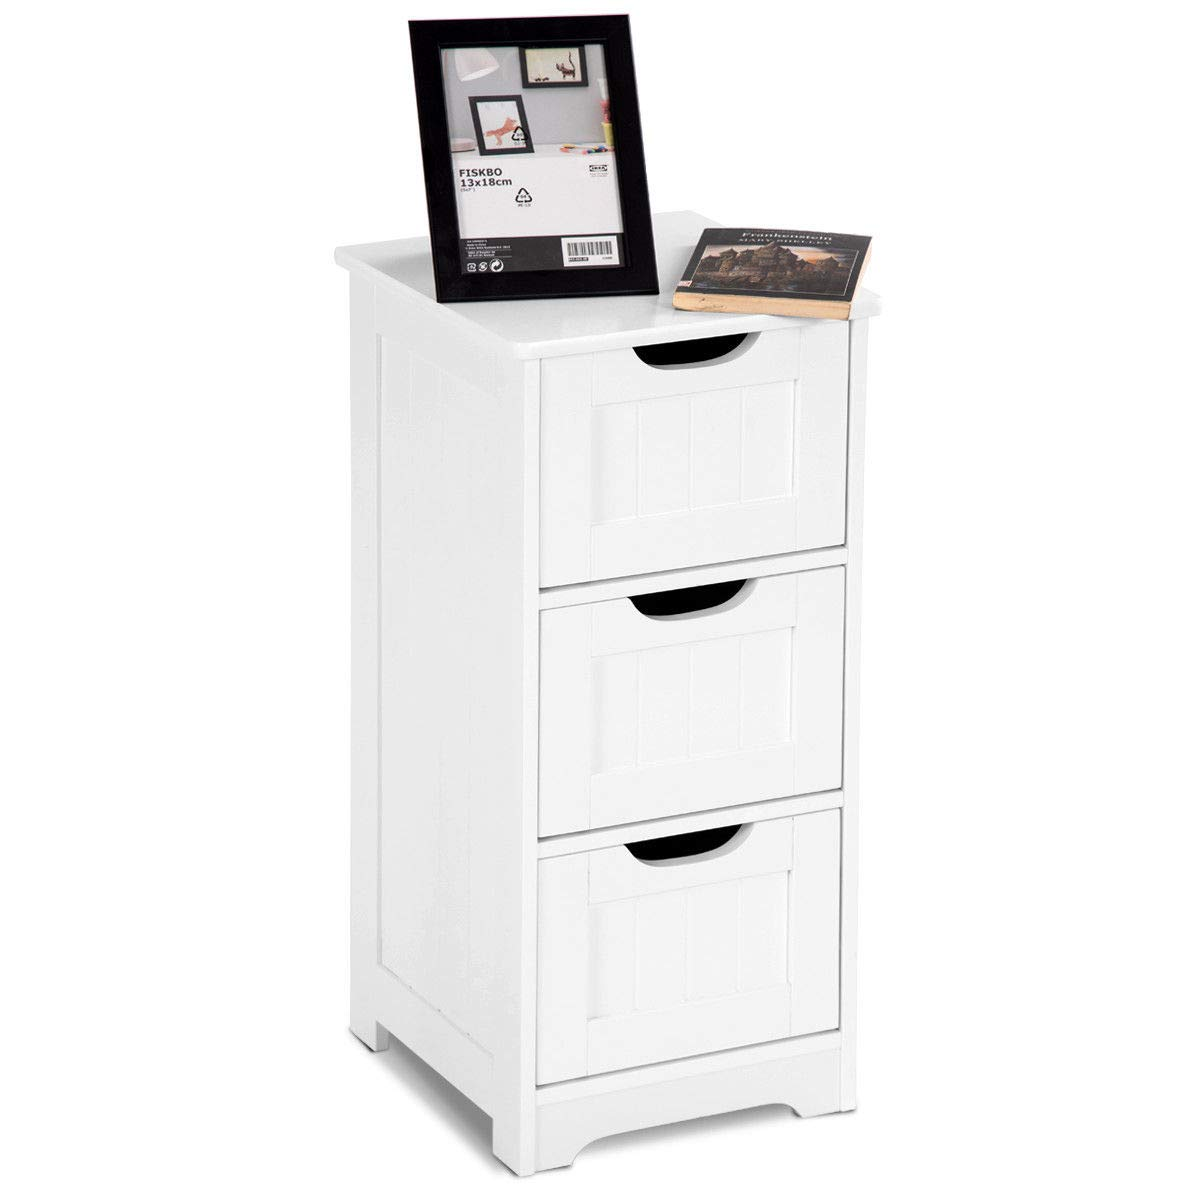 Tangkula Floor Cabinet with 3 Drawers Wooden Storage Cabinet for Home Office Living Room Bathroom Side Table Sturdy Modern Drawer Cabinet Organizer Bedroom Night Stand, White(3 Drawers) by TANGKULA (Image #1)